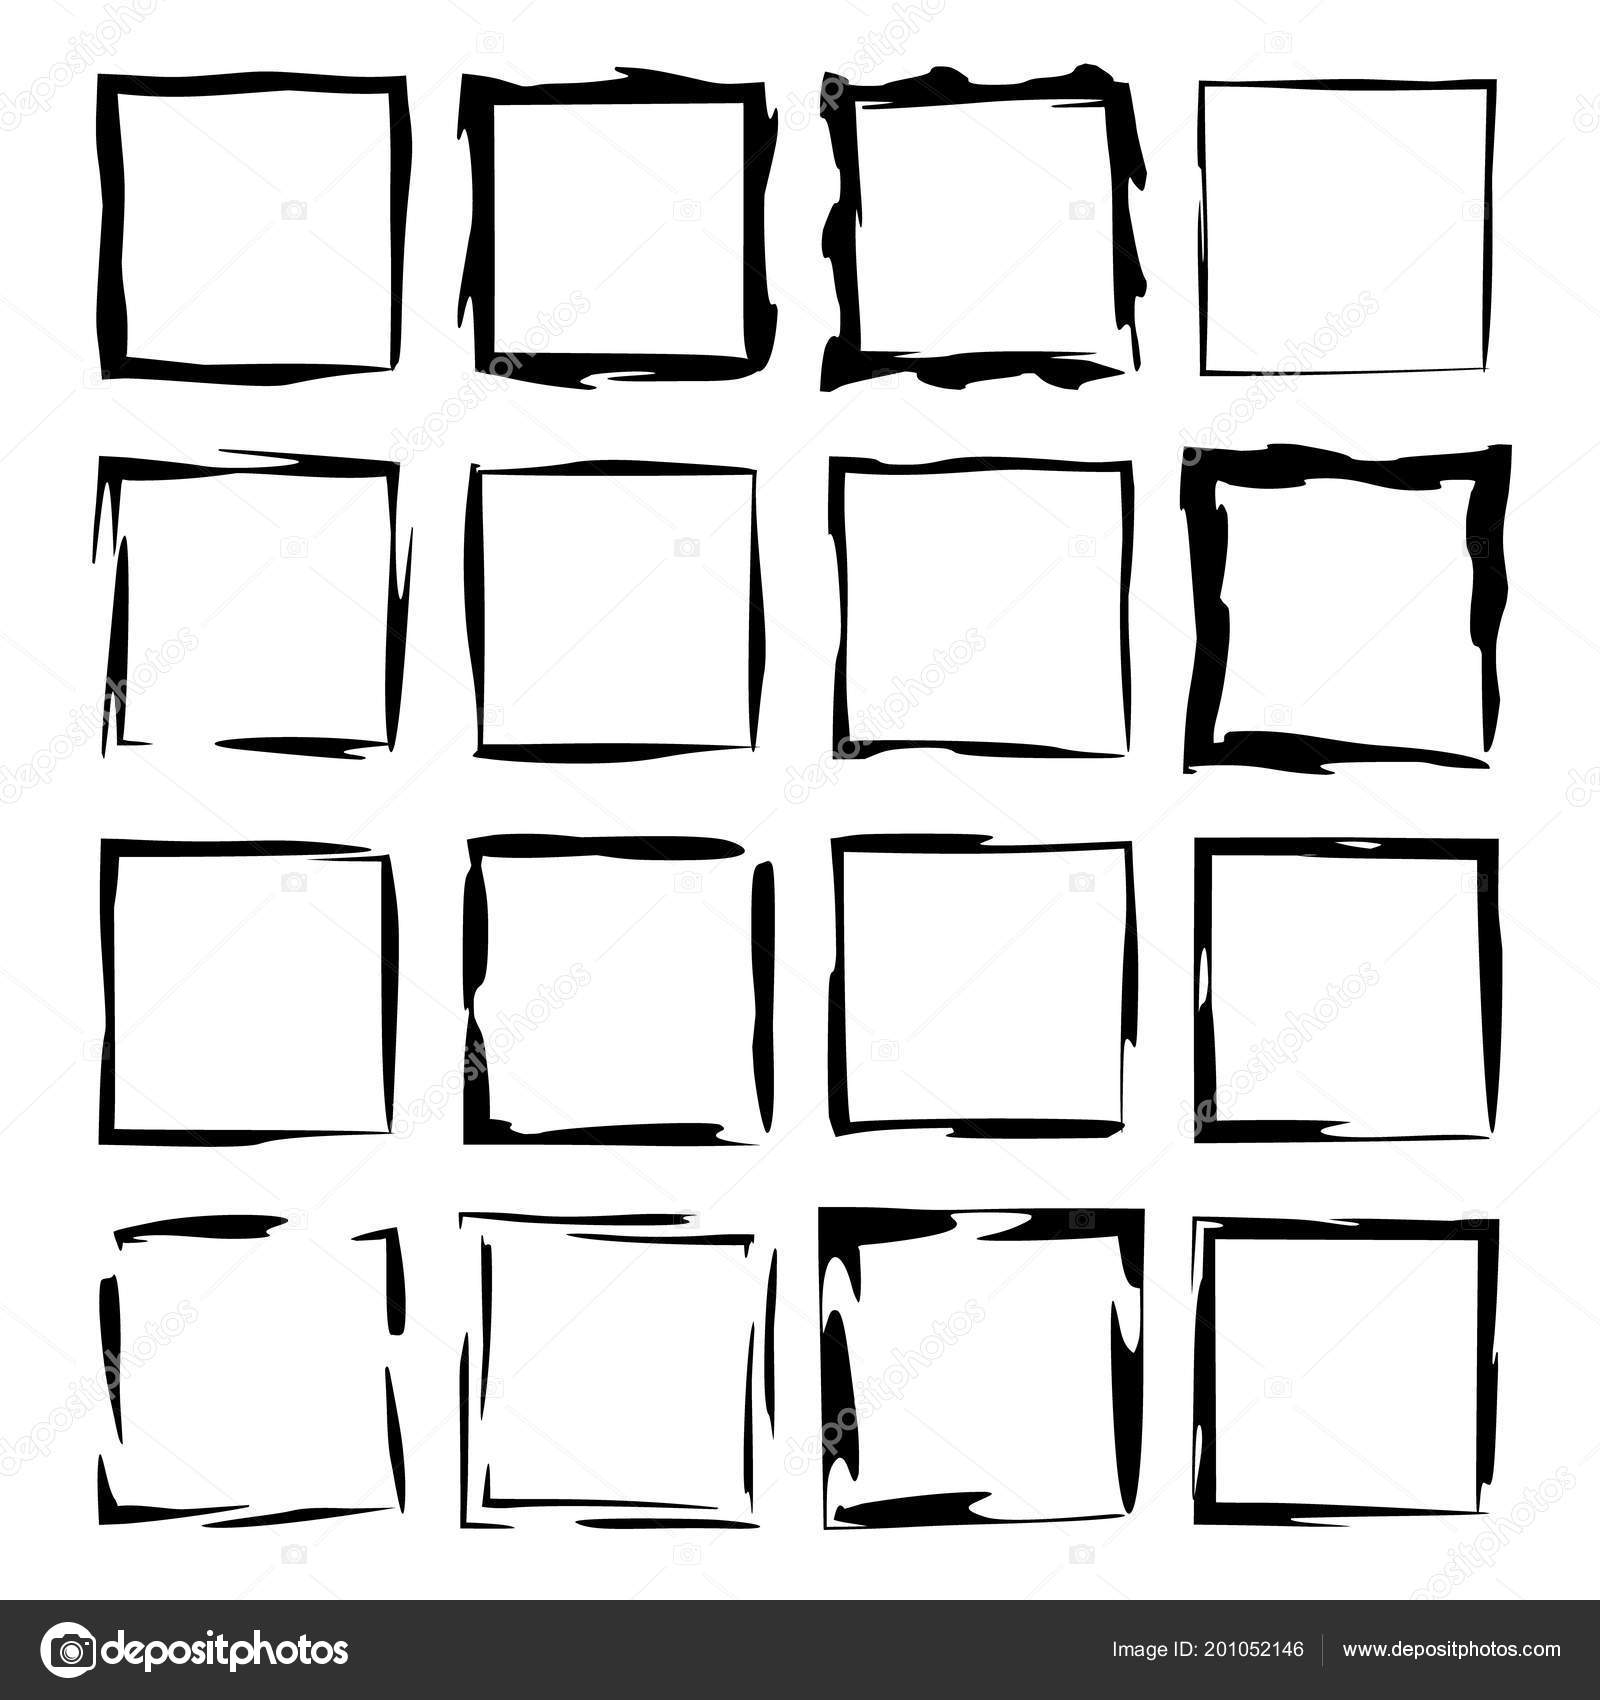 Grunge Frames Geometric Square Empty Borders Vector Illustration